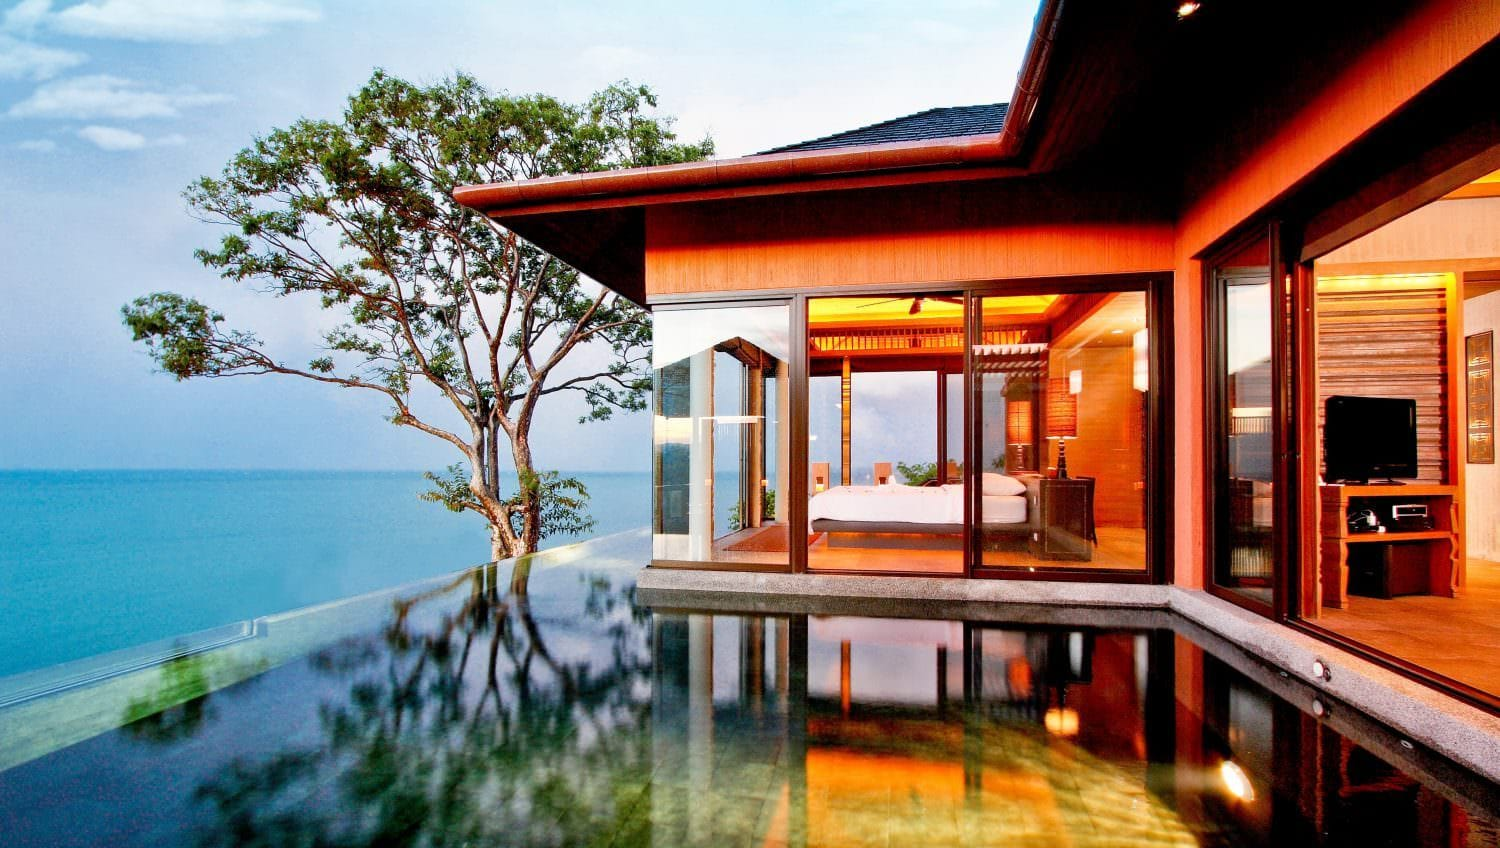 Sri panwa luxury pool villa resort spa Phuket Thailand